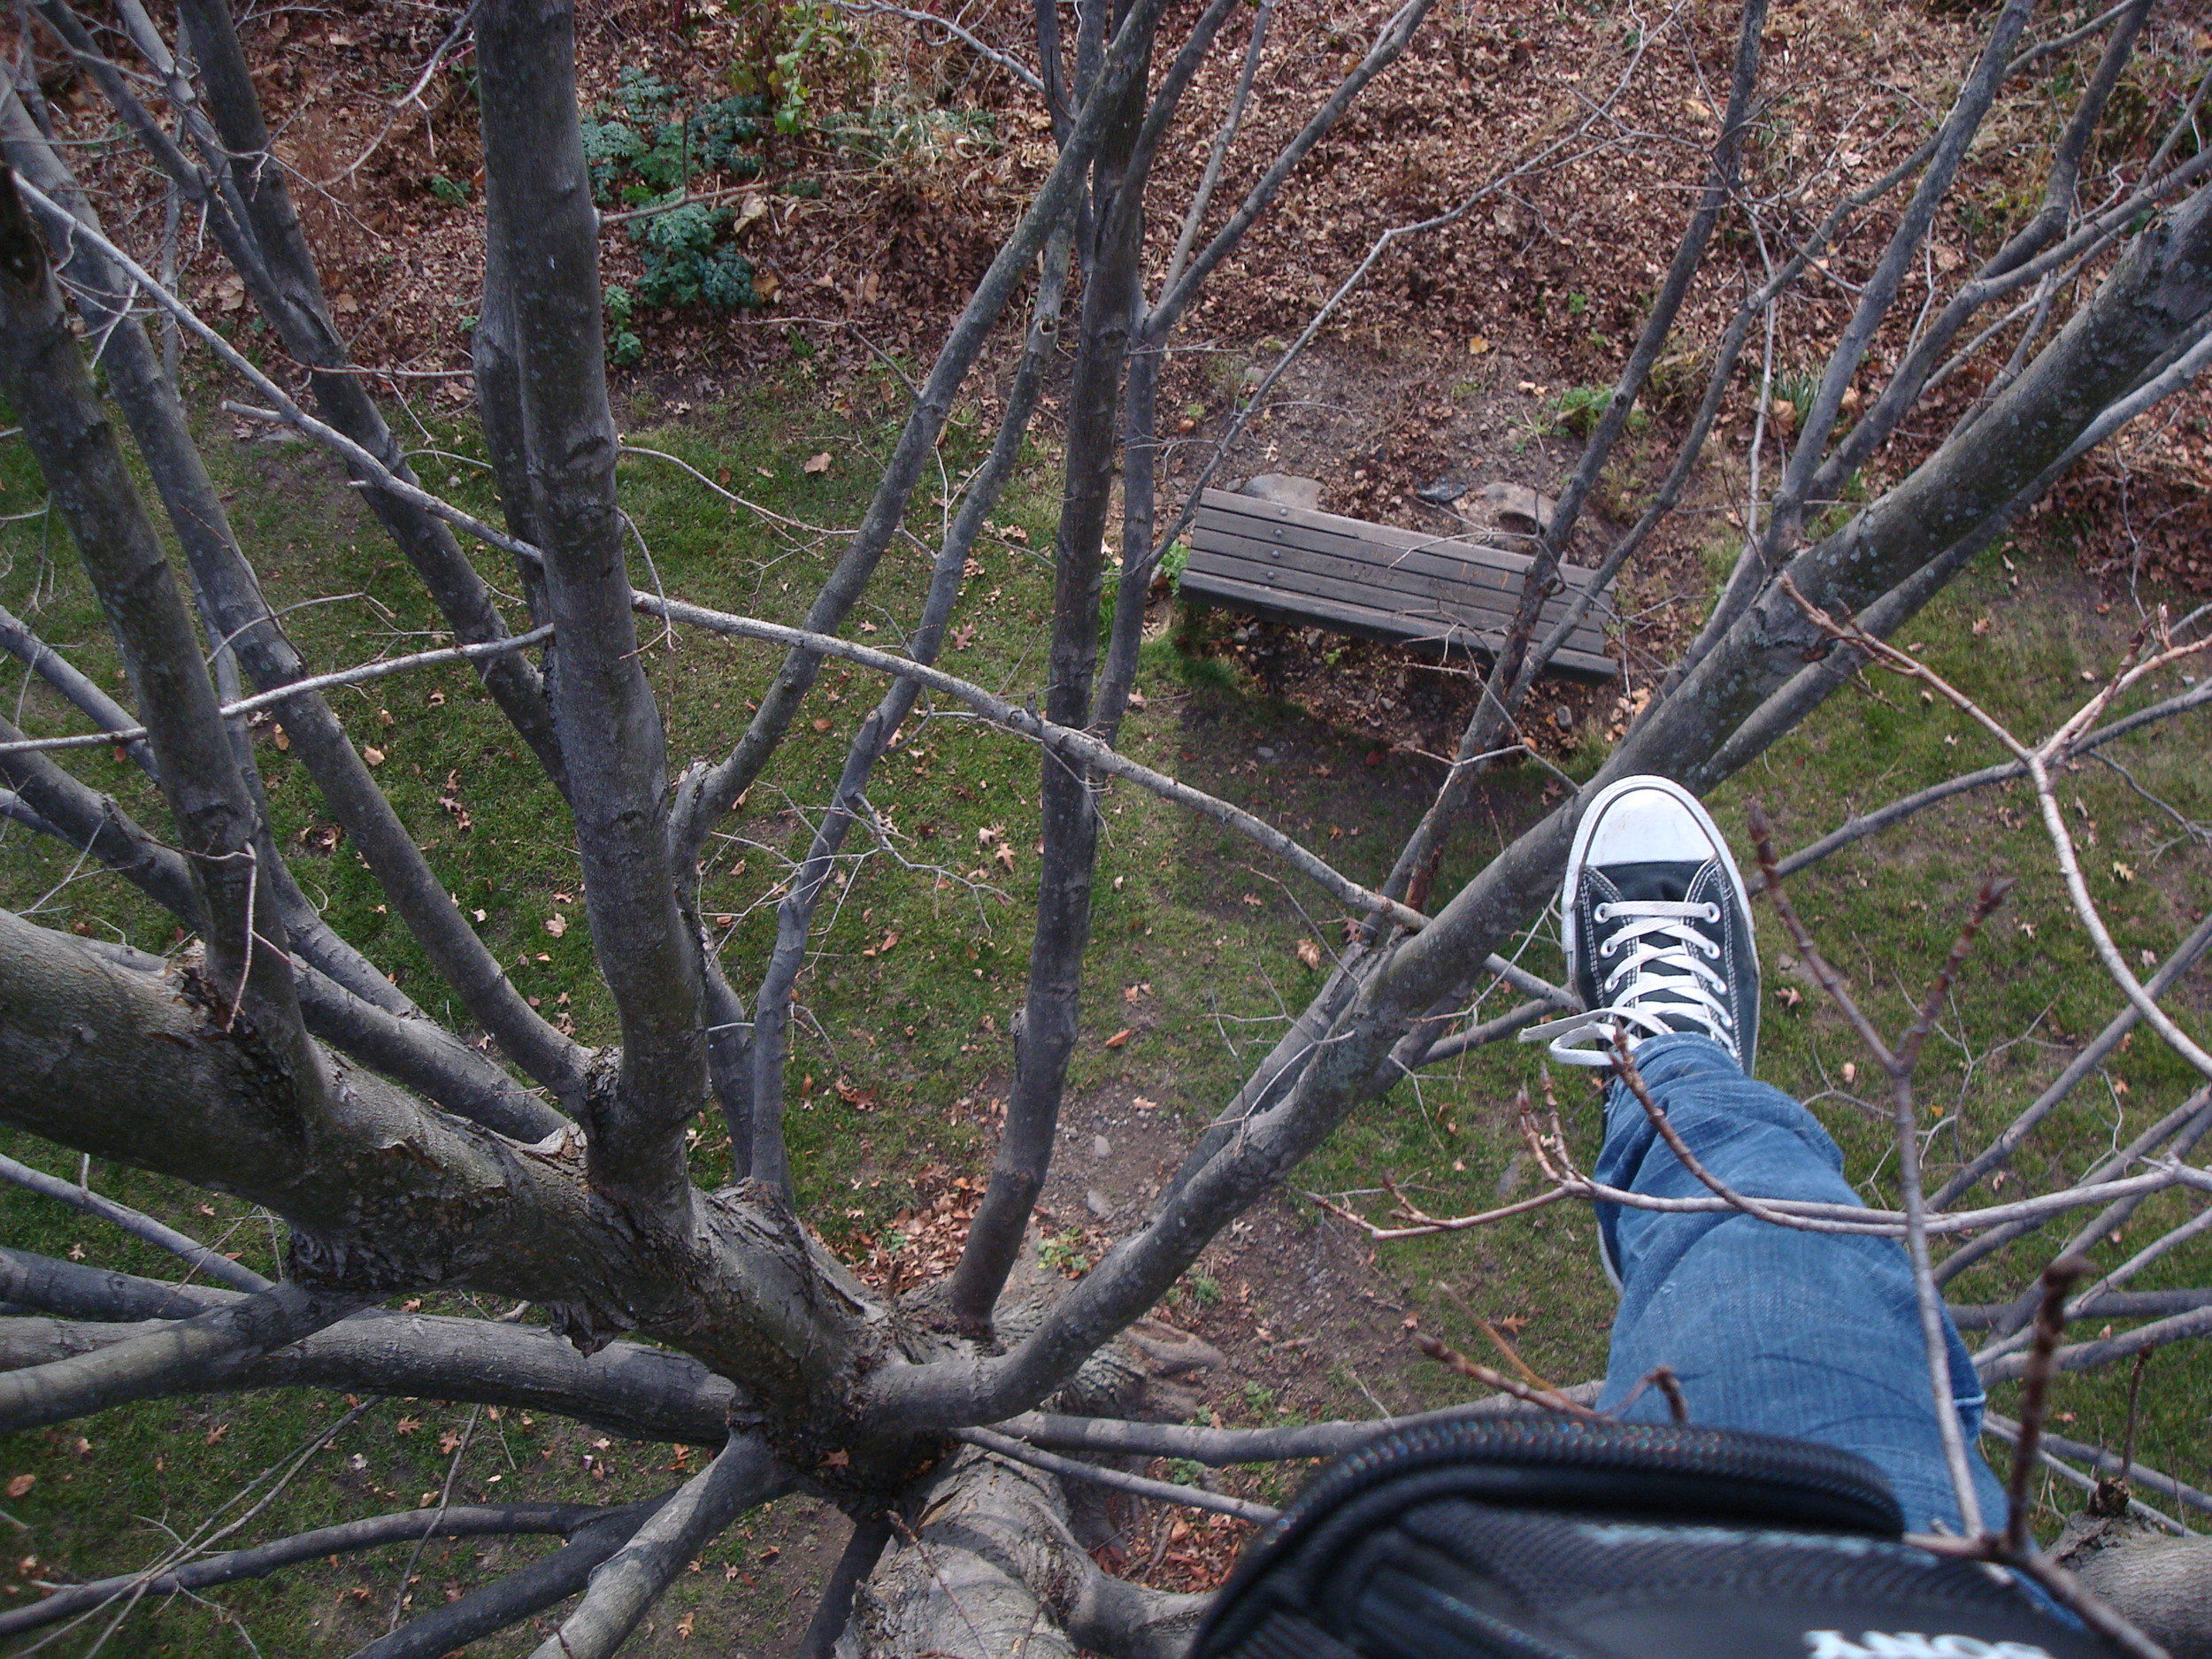 the view from (almost) the top of a tree, looking down at a bench.